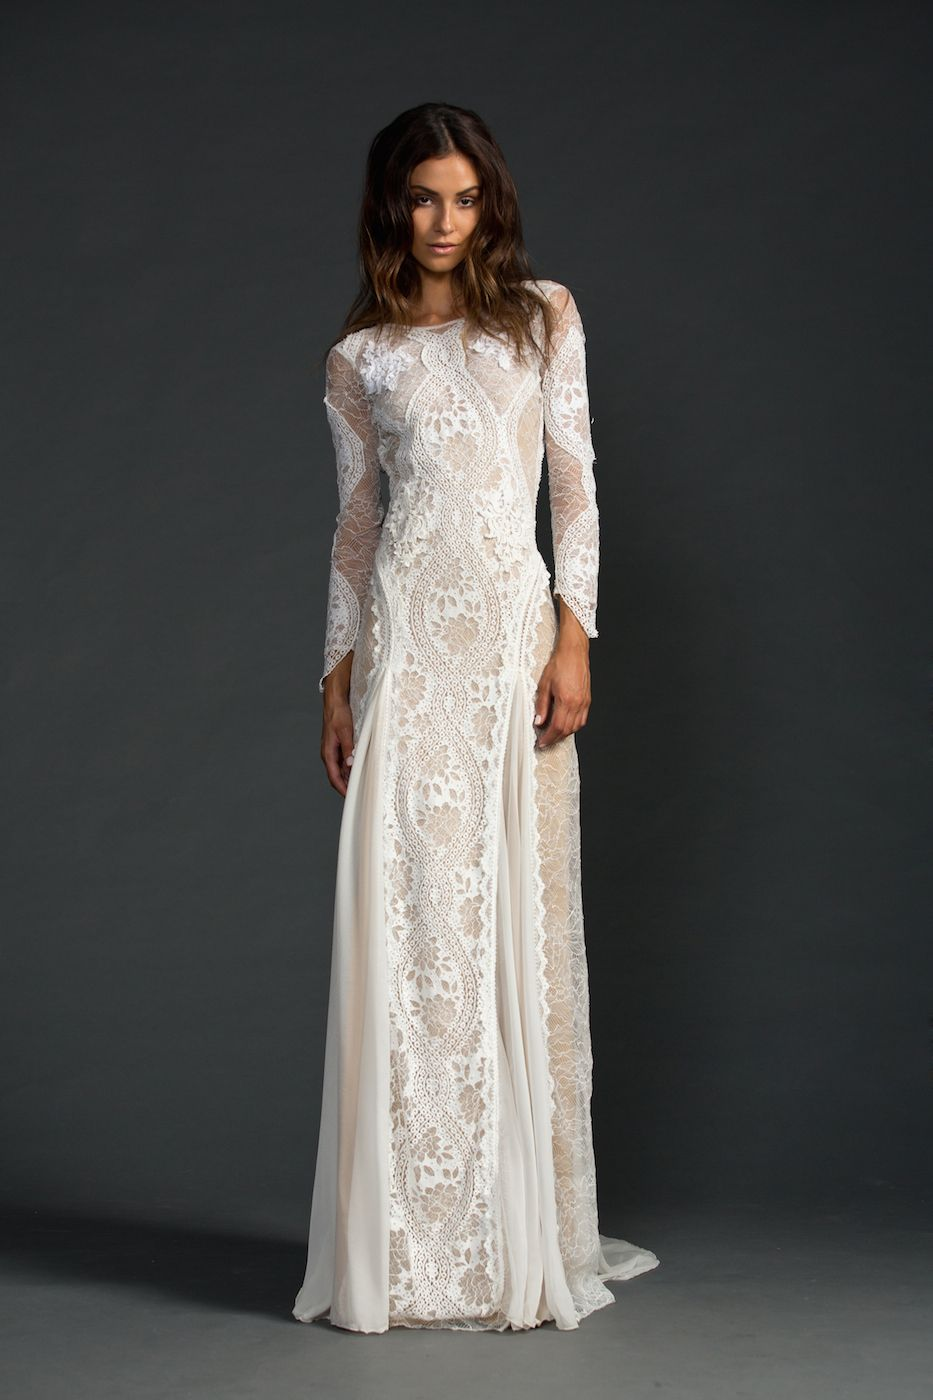 Vestido de noiva estilo boho chic lace wedding dresses lace